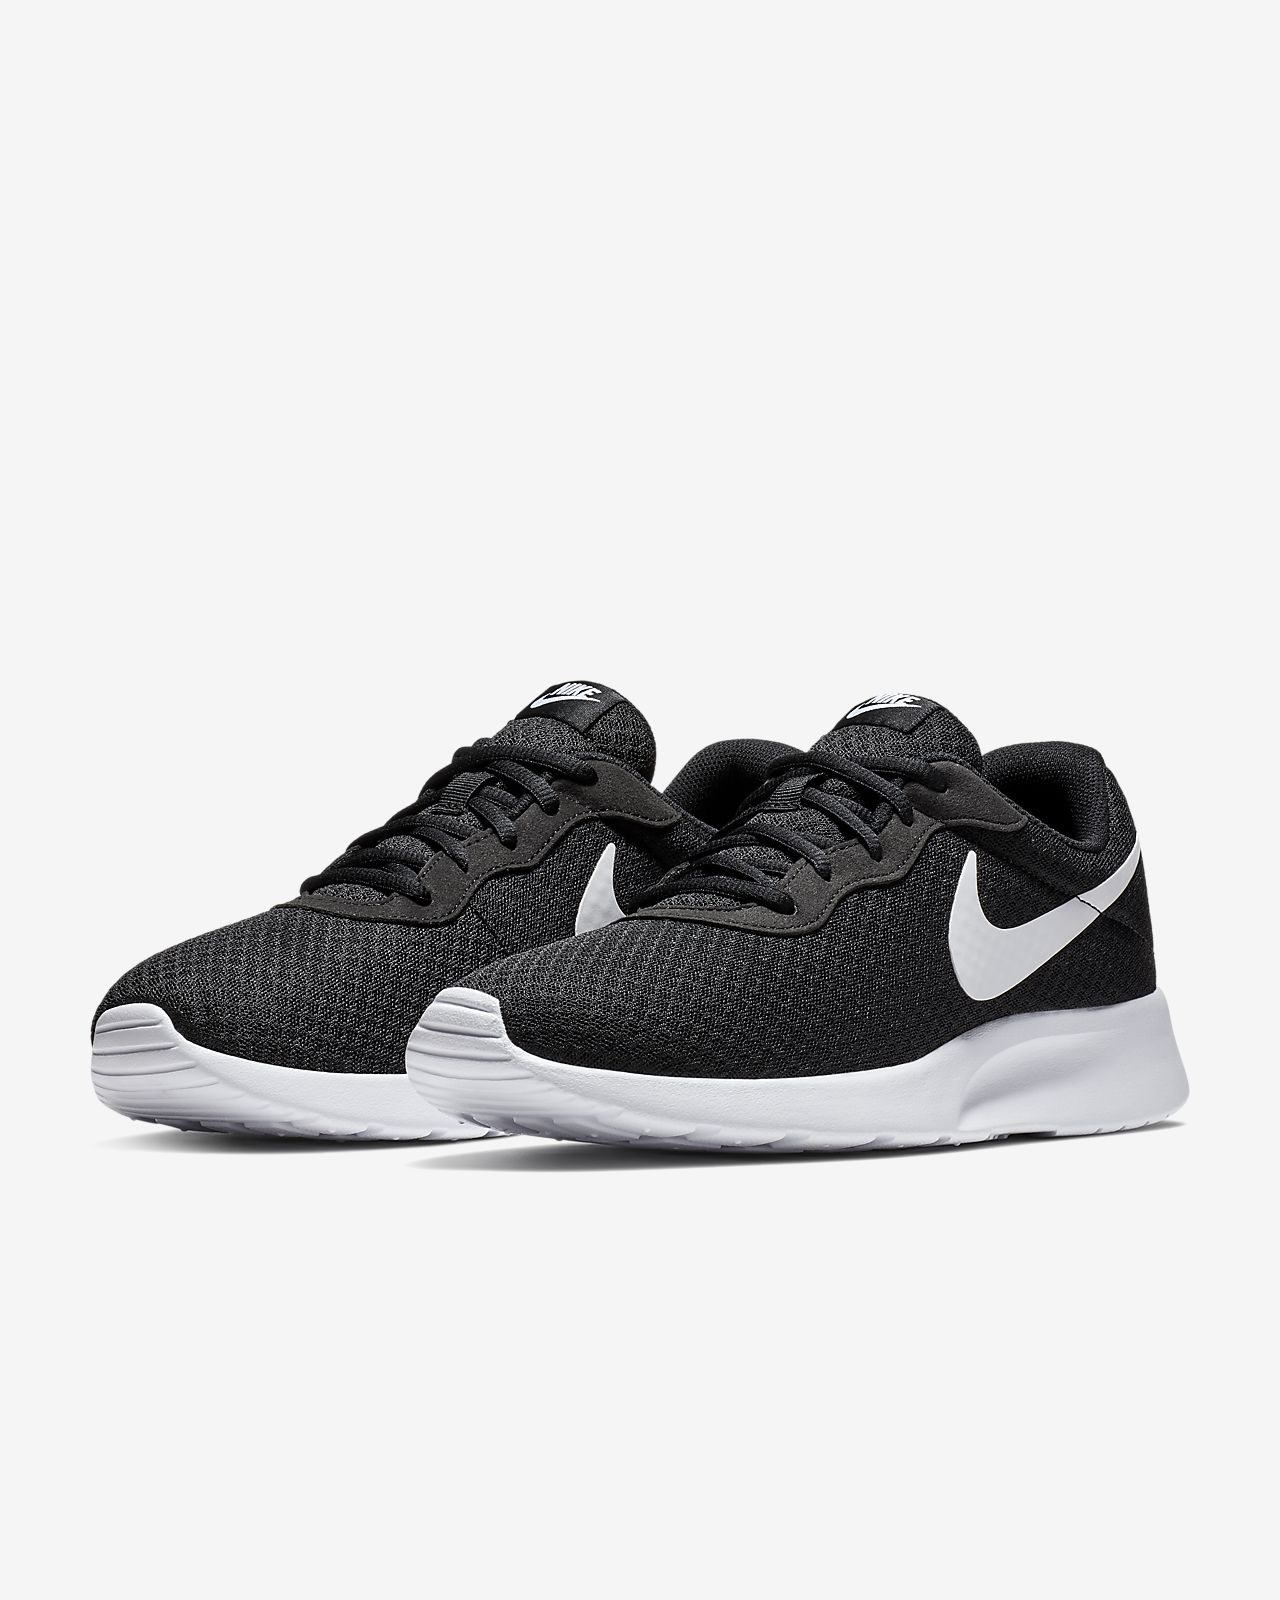 uk availability 02be0 ff36b Low Resolution Chaussure Nike Tanjun pour Homme Chaussure Nike Tanjun pour  Homme